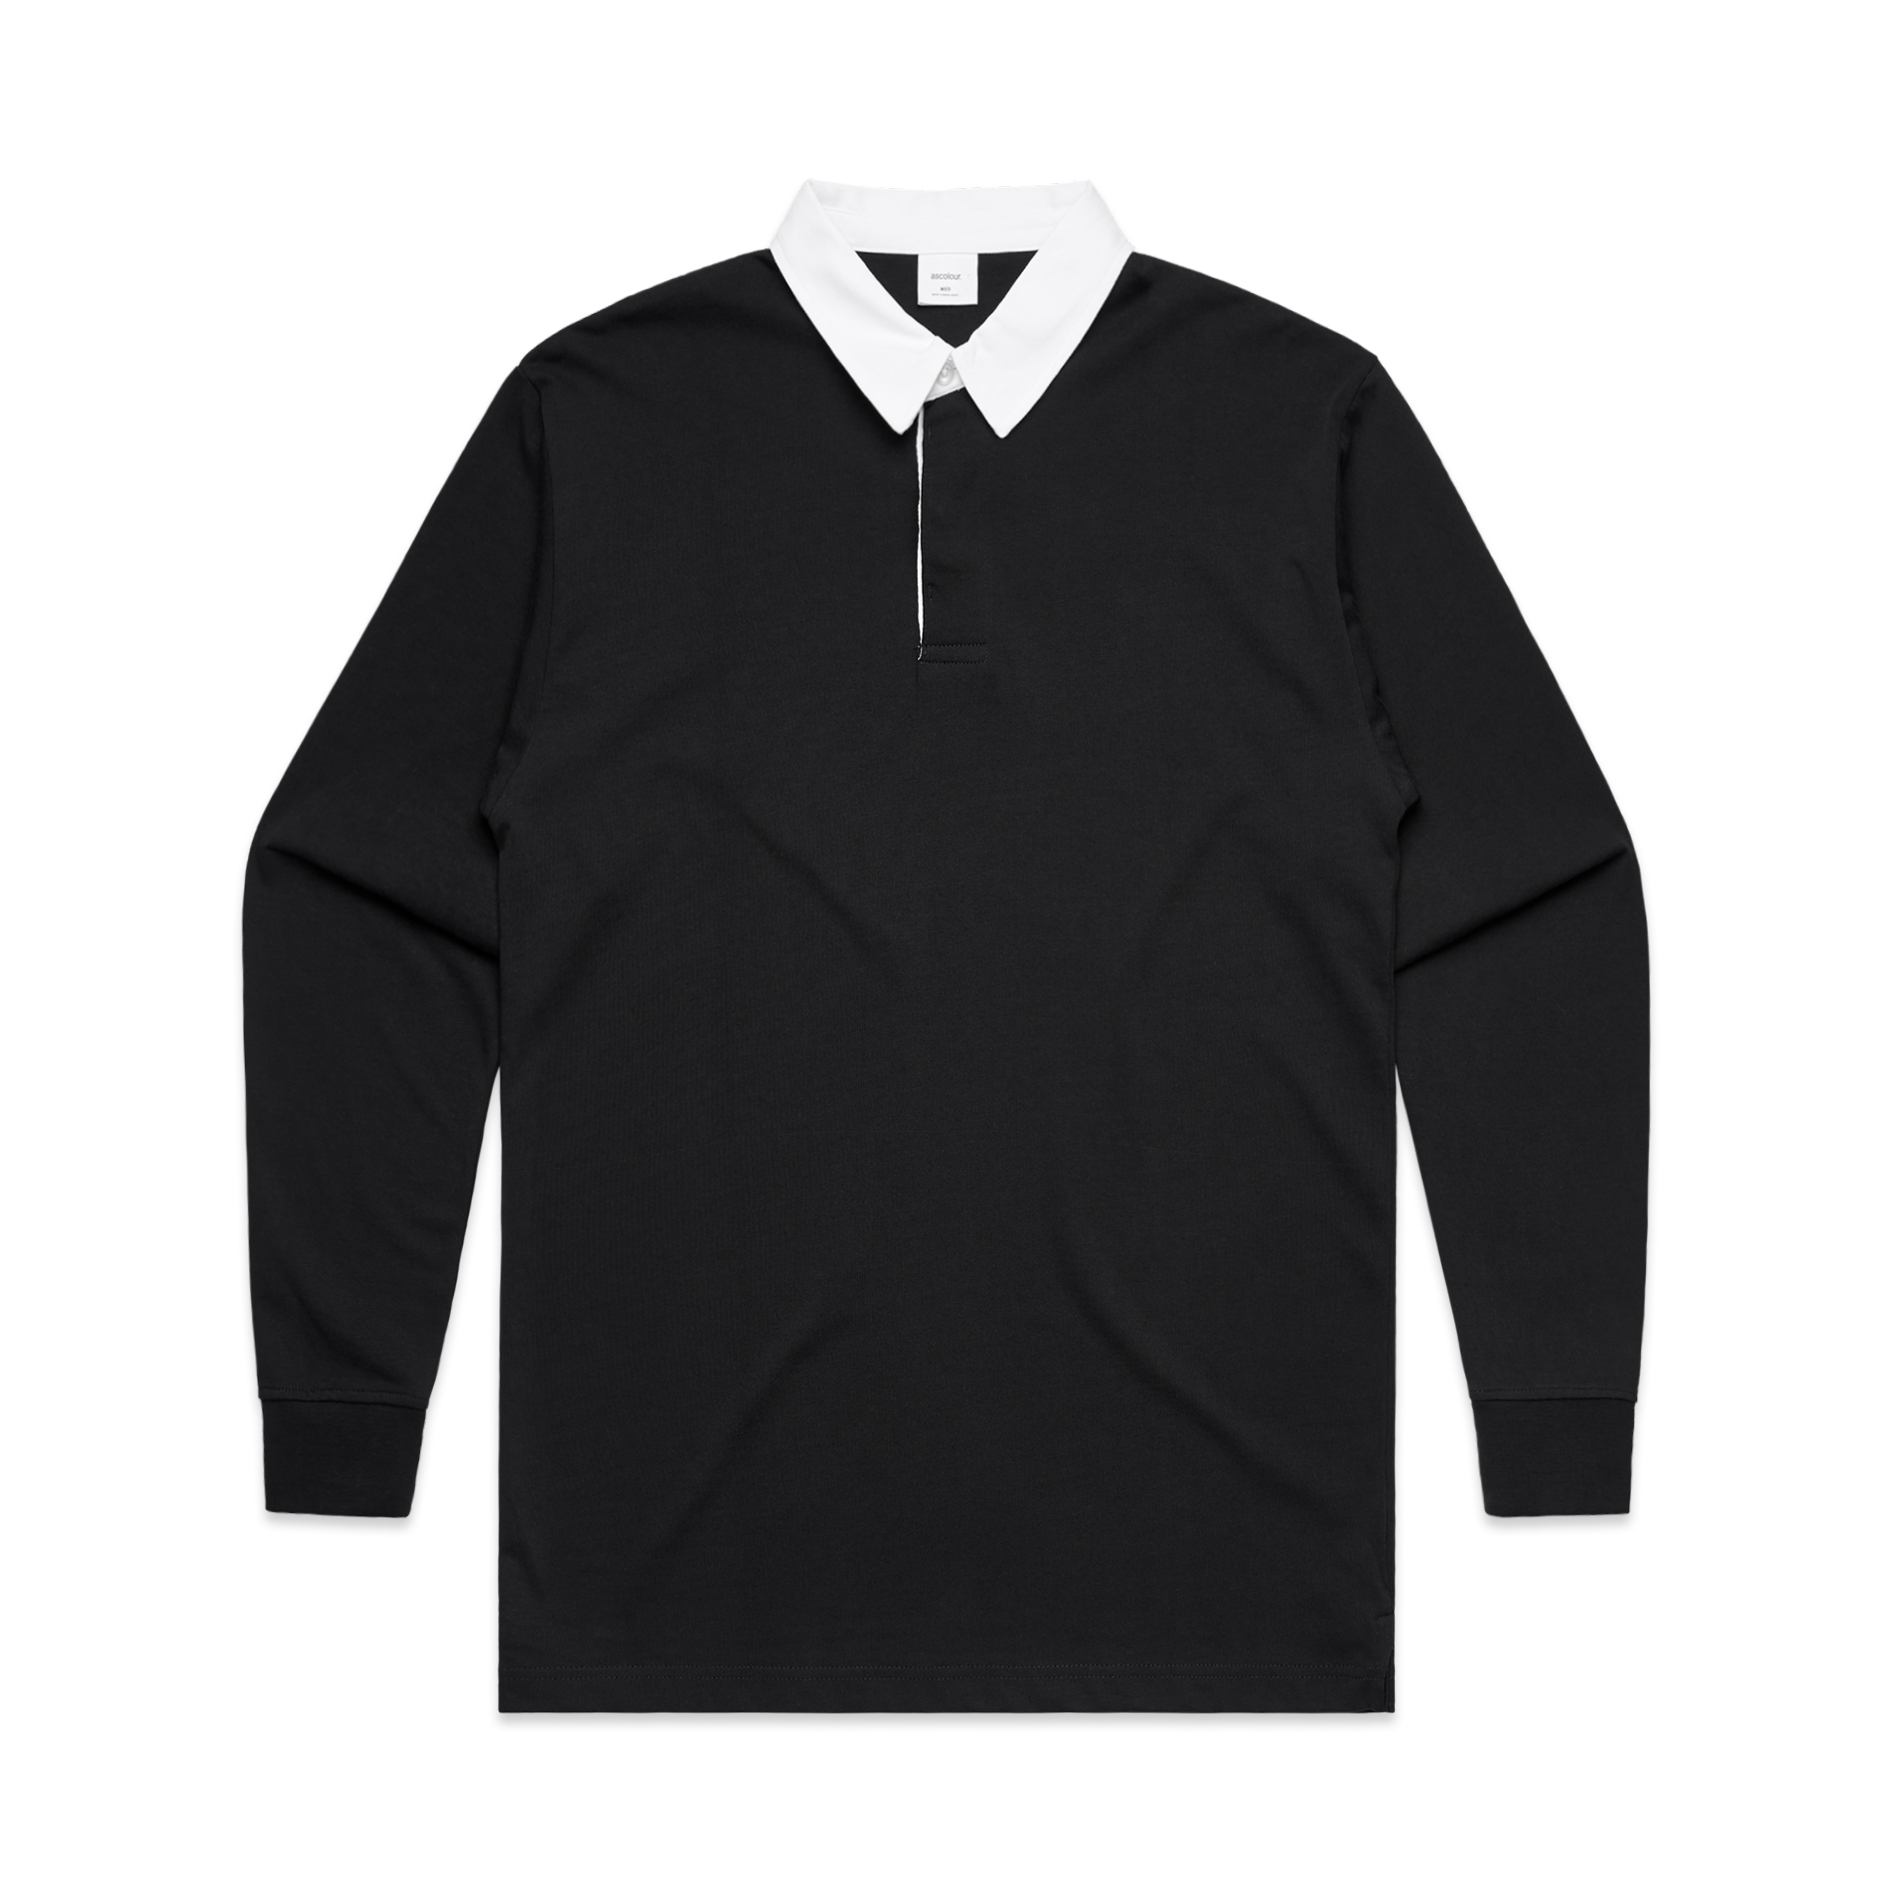 5410 RUGBY JERSEY